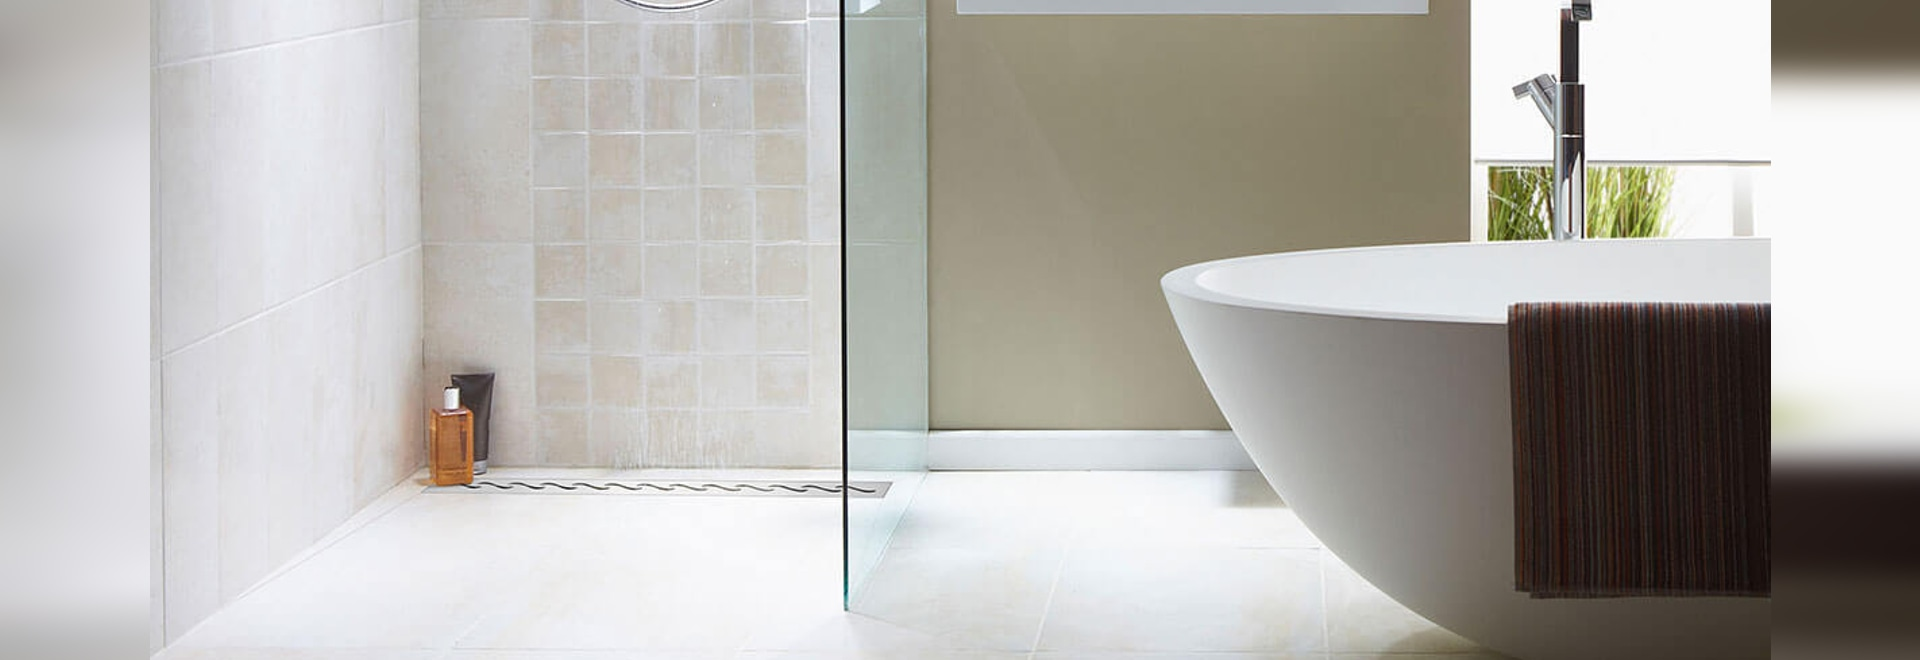 Trends in bathroom design: a curbless shower - Poland - JKB Group